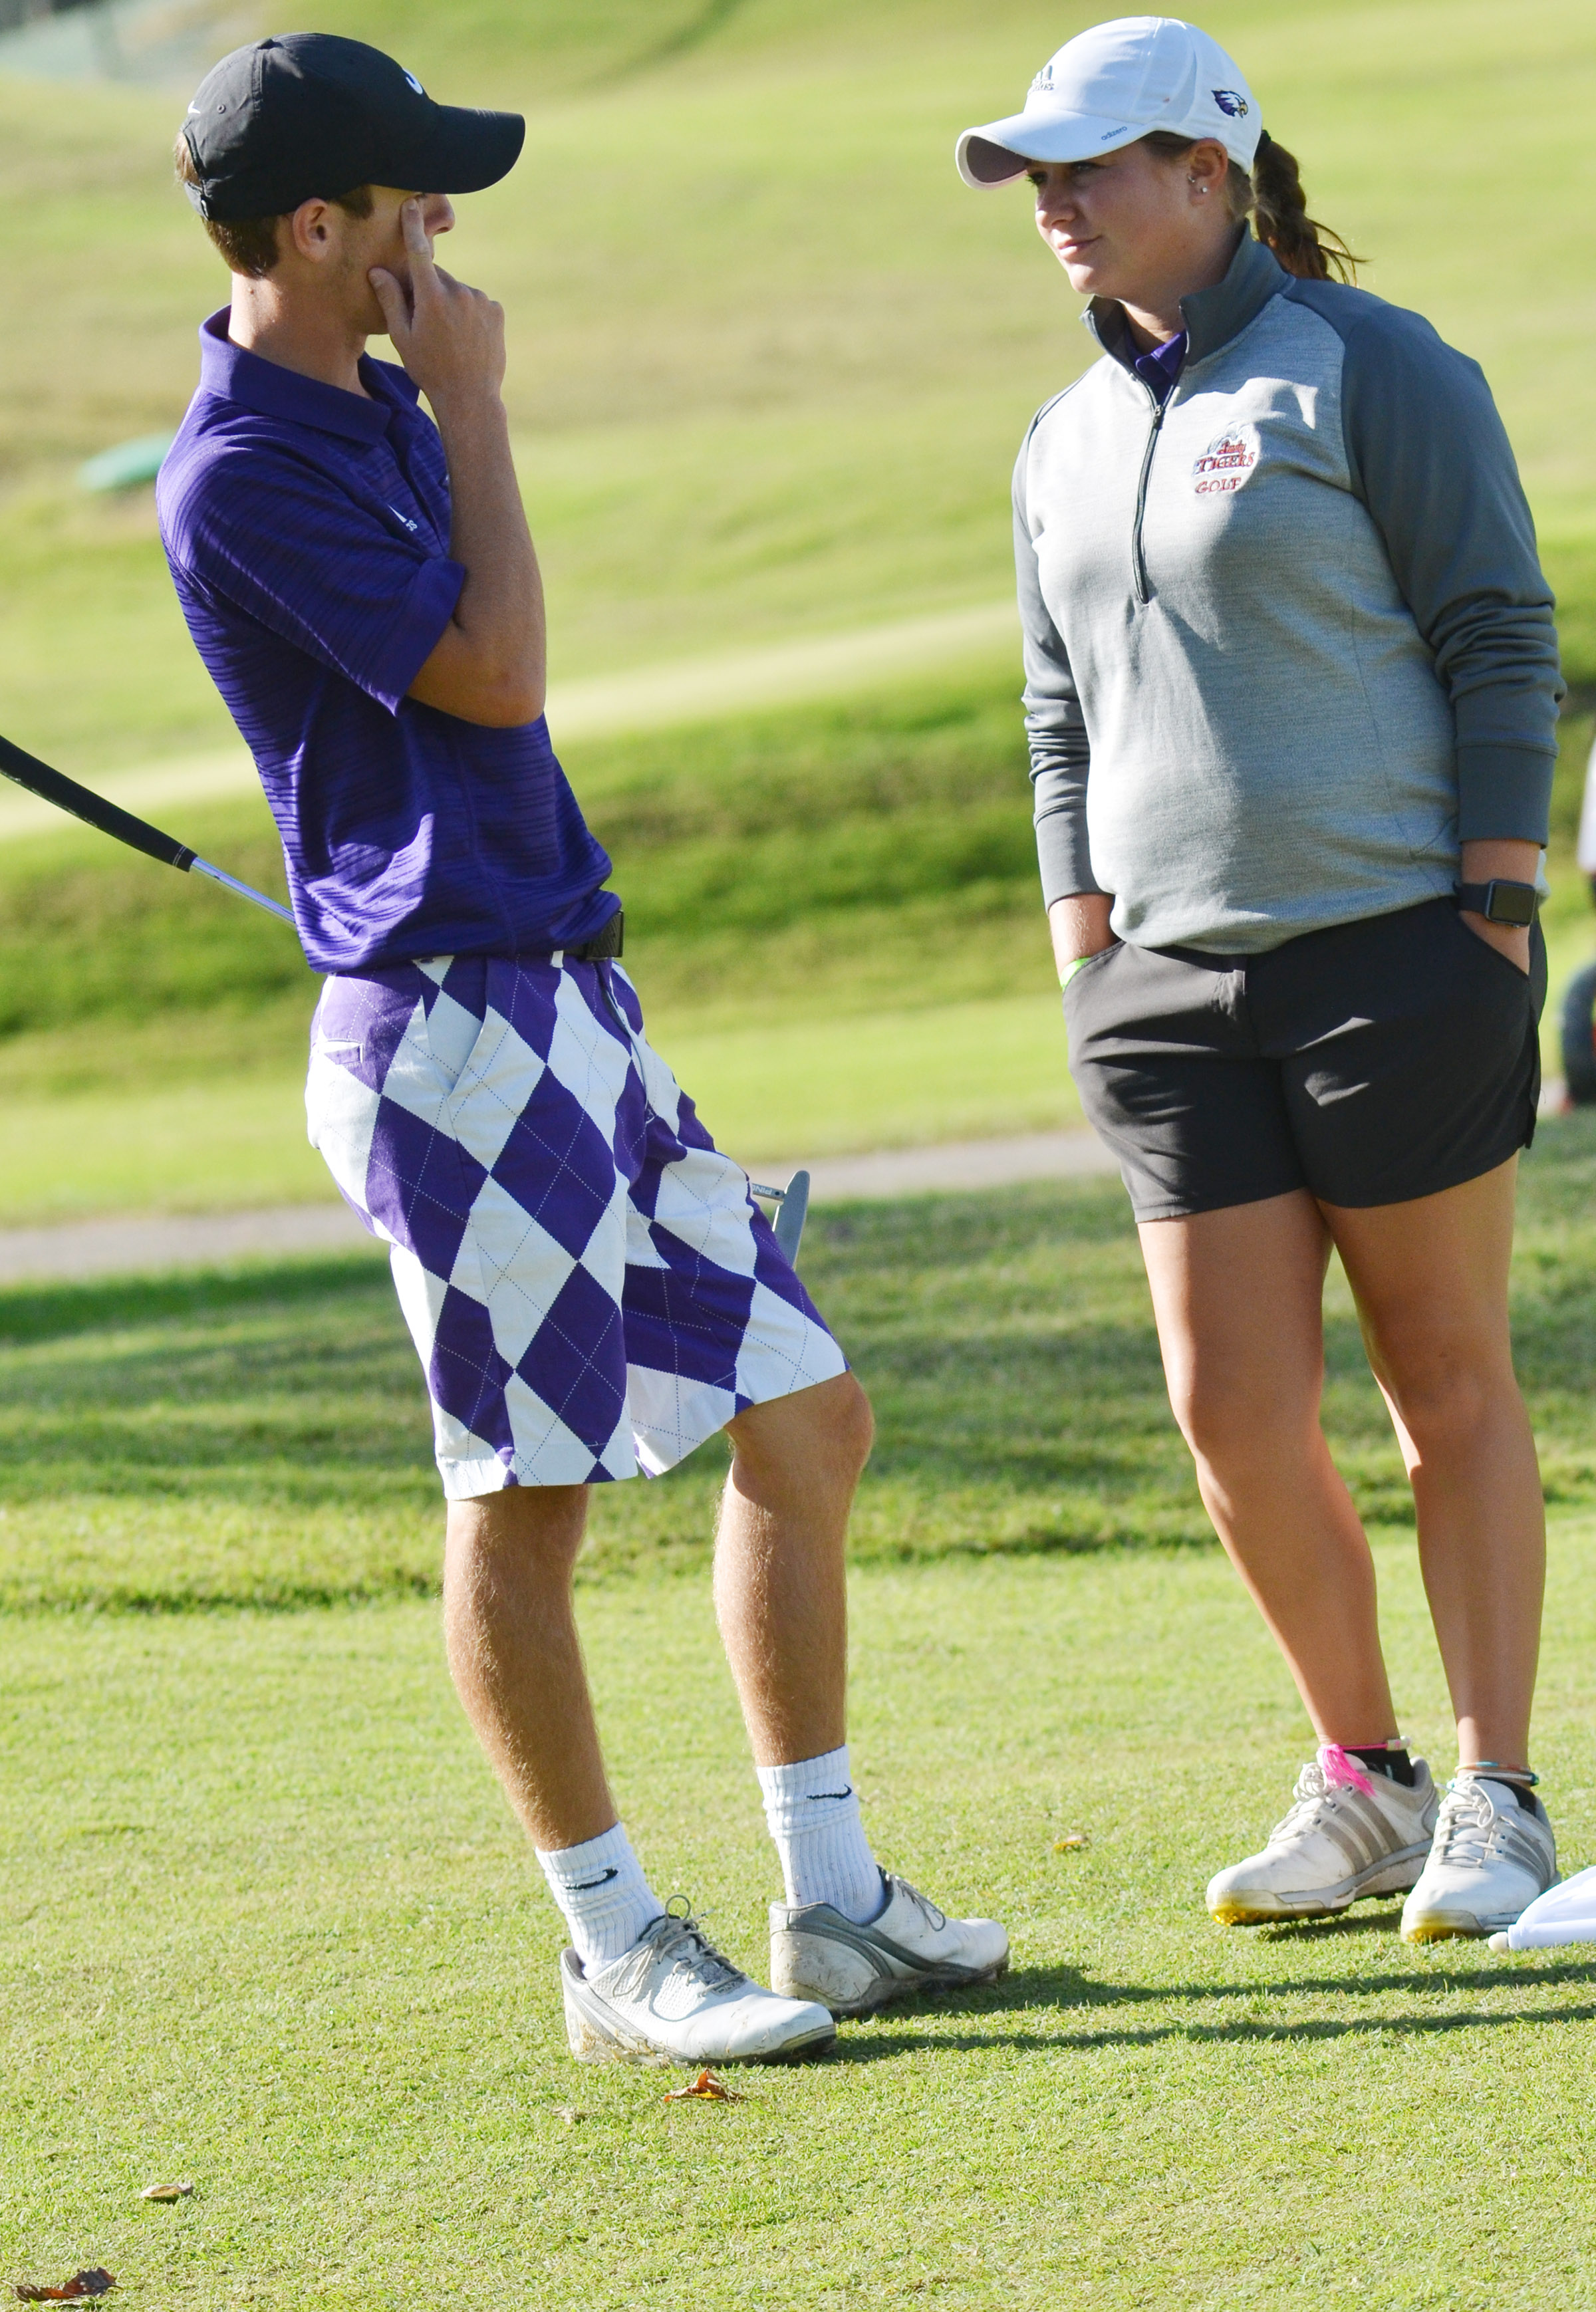 CHS junior Layton Hord talks with coach Cassidy Decker before a shot.